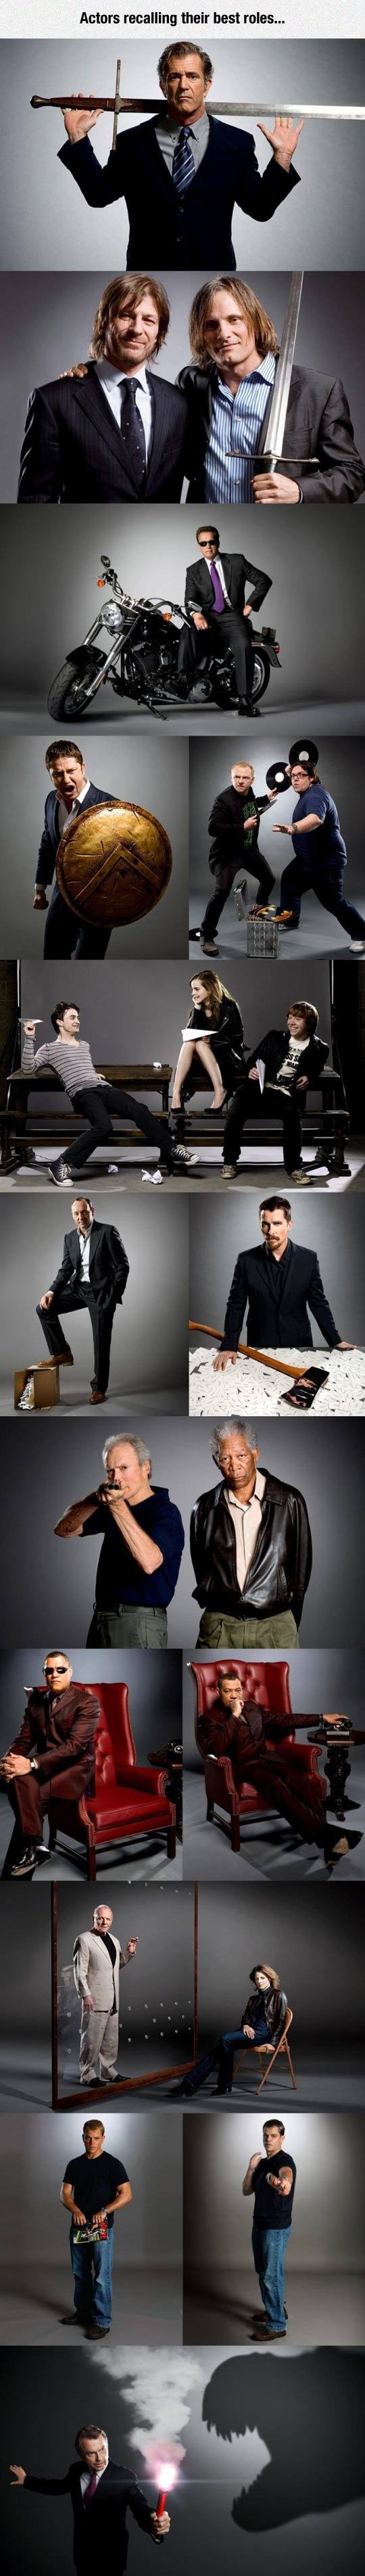 Actors recreating their best roles. Lord of the Rings, Gladiator, Shaun of the Dead, terminator